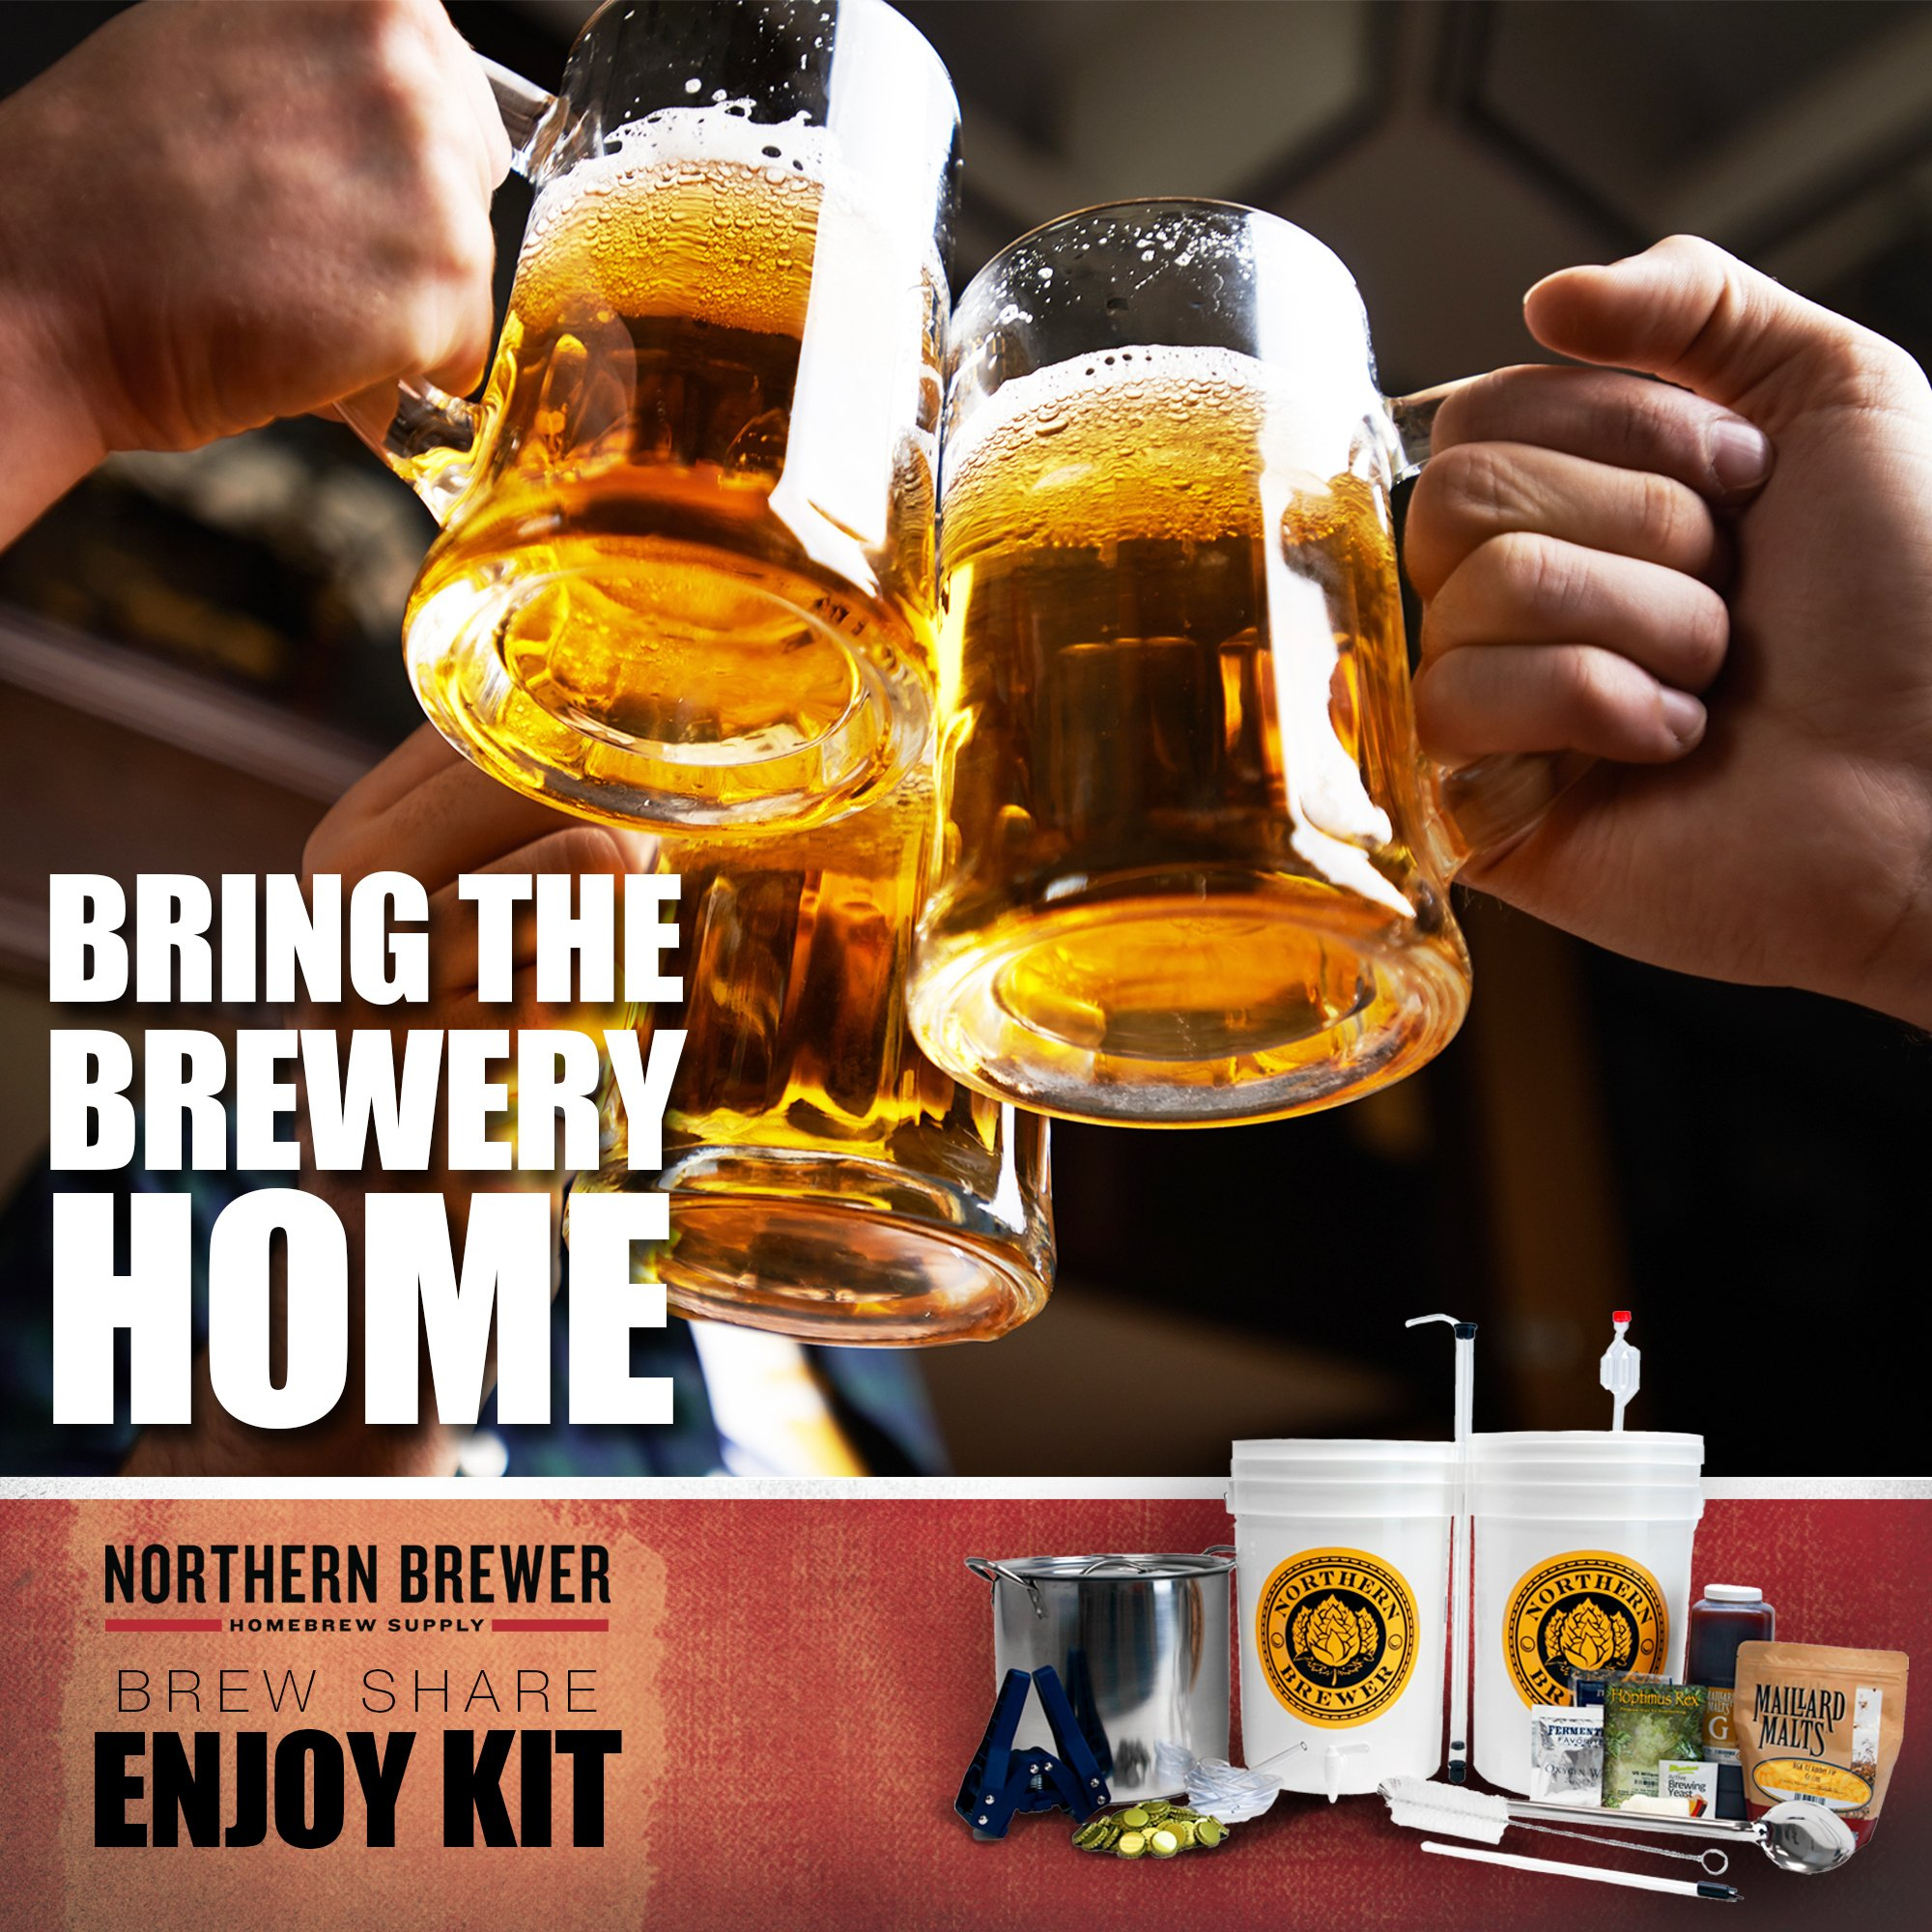 Northern Brewer - Brew. Share. Enjoy. Homebrew 5 Gallon Beer Brewing Starter Set Recipe Kit and Brew Kettle (Block Party Amber) by Northern Brewer (Image #8)